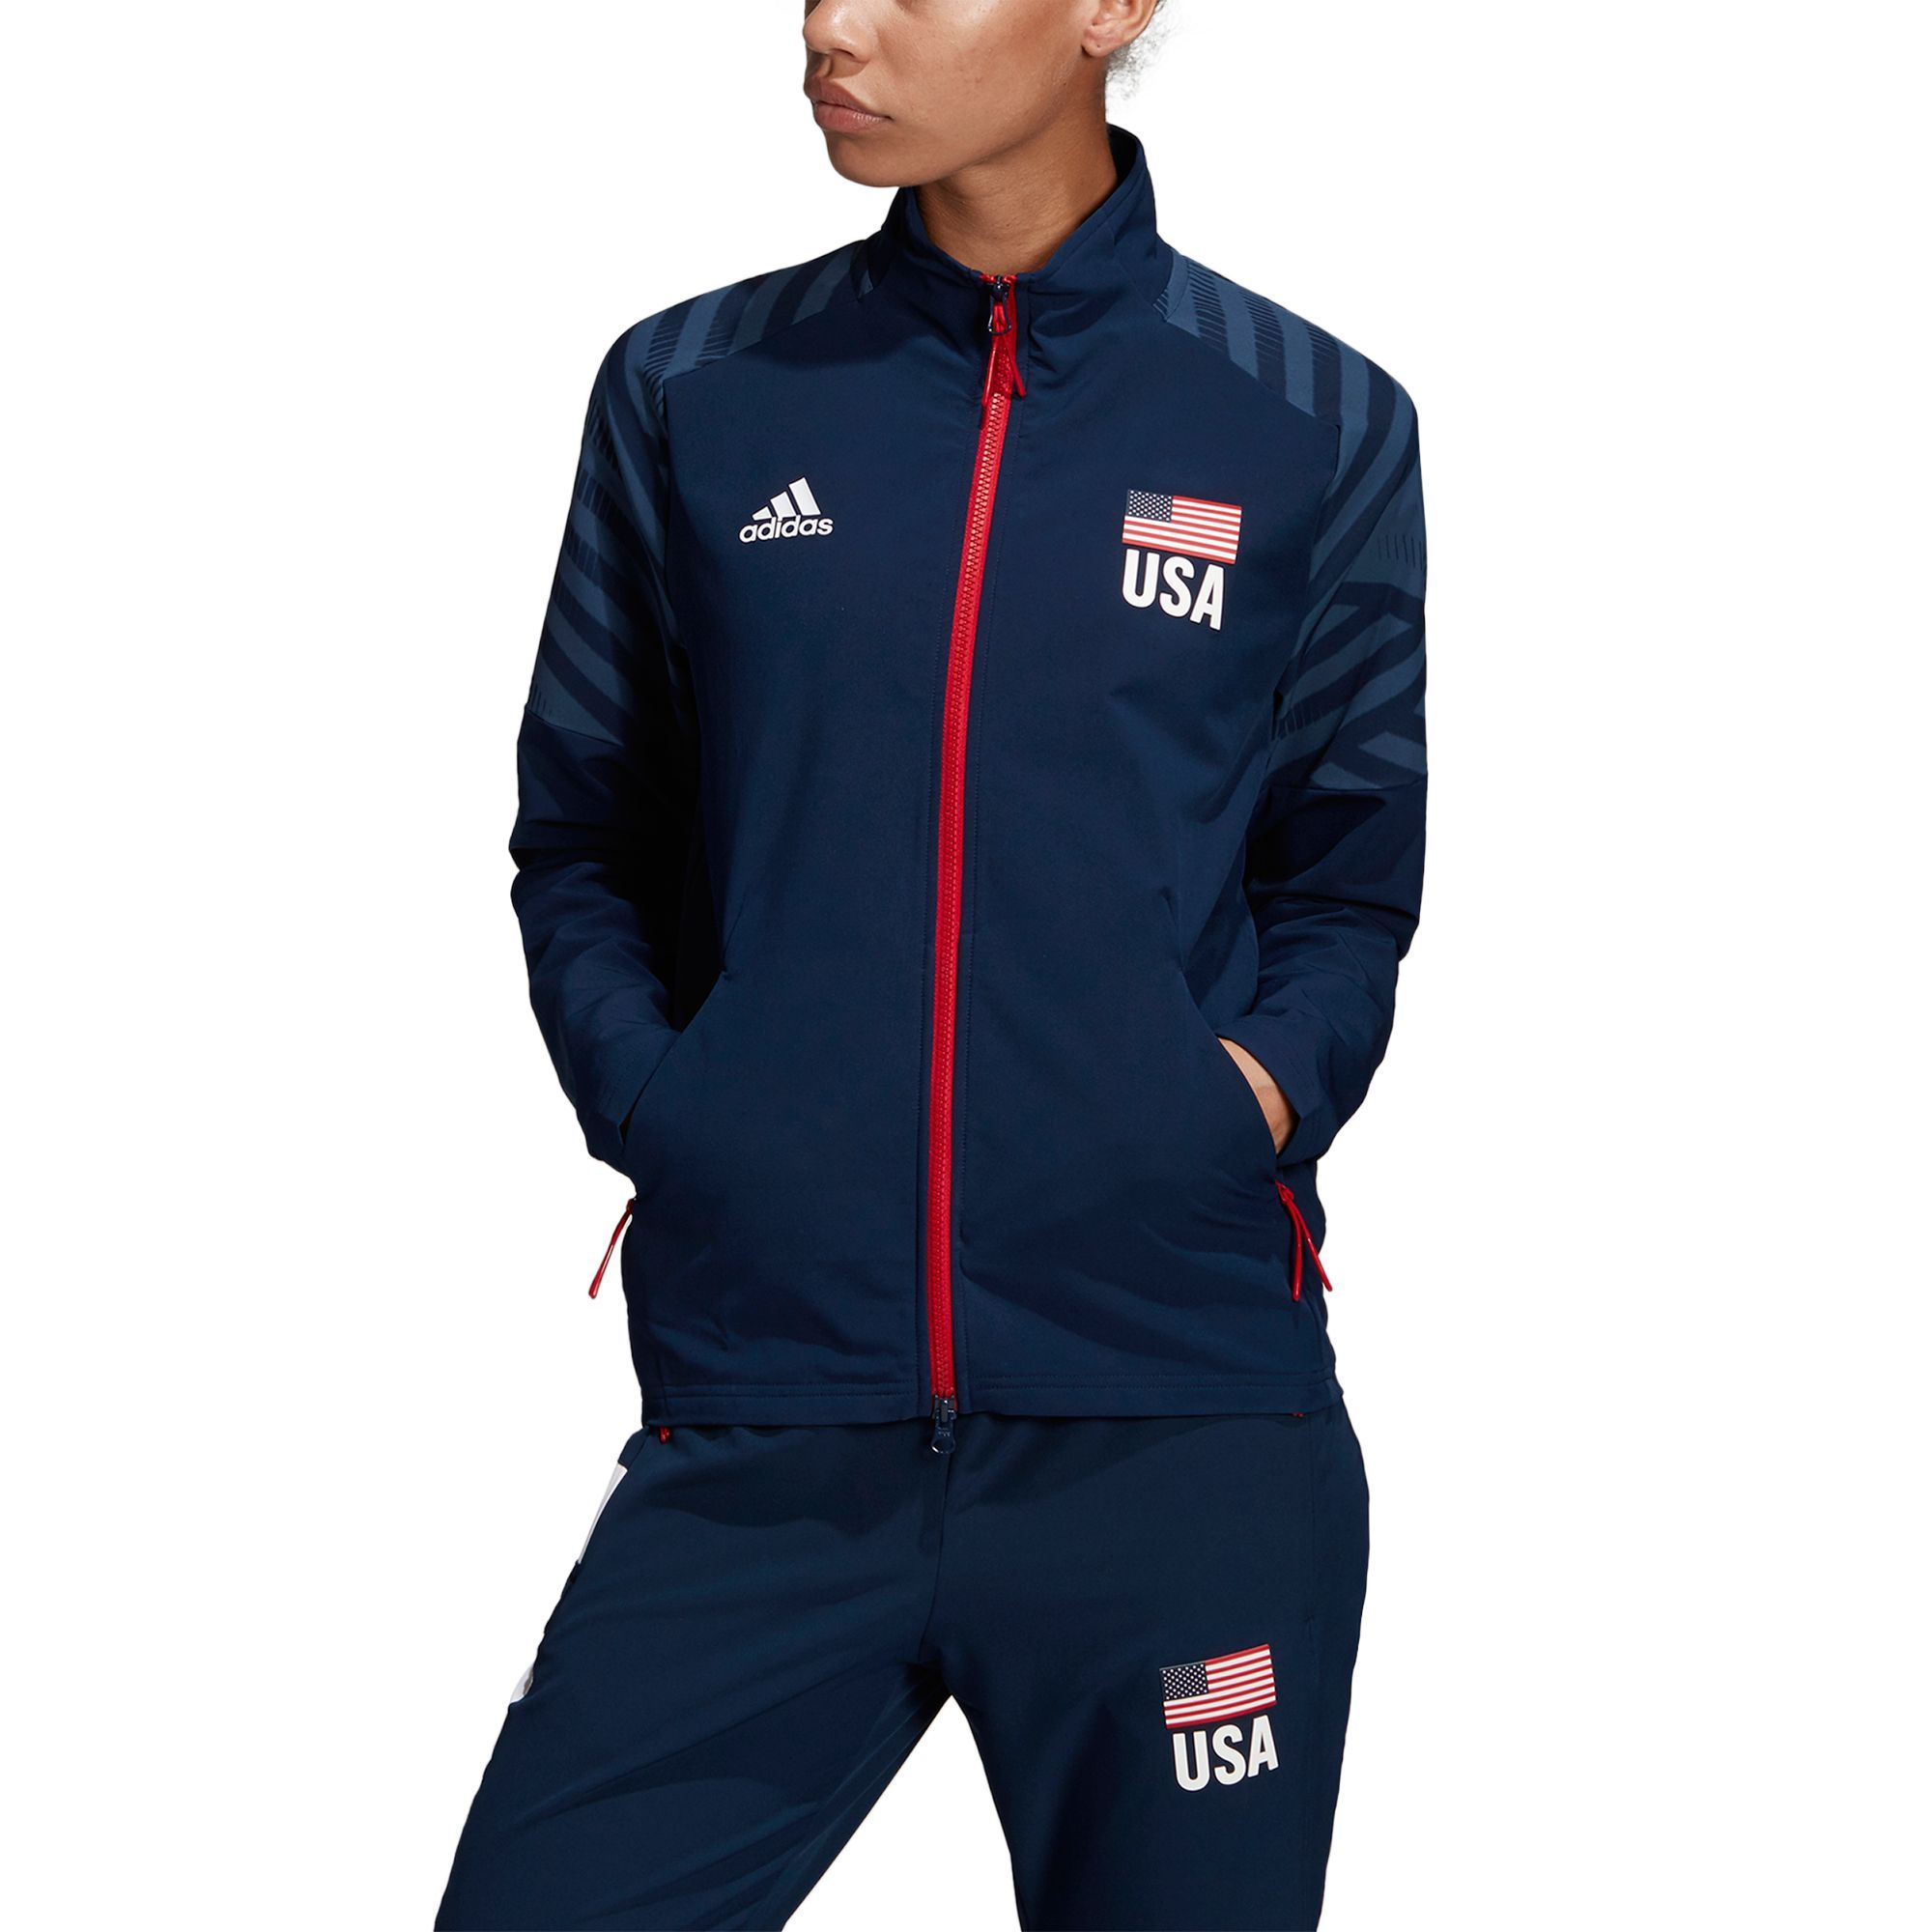 ecd12e1e3c8a Adidas Women's USA Volleyball Warm-Up Jacket in 2019 | Products ...